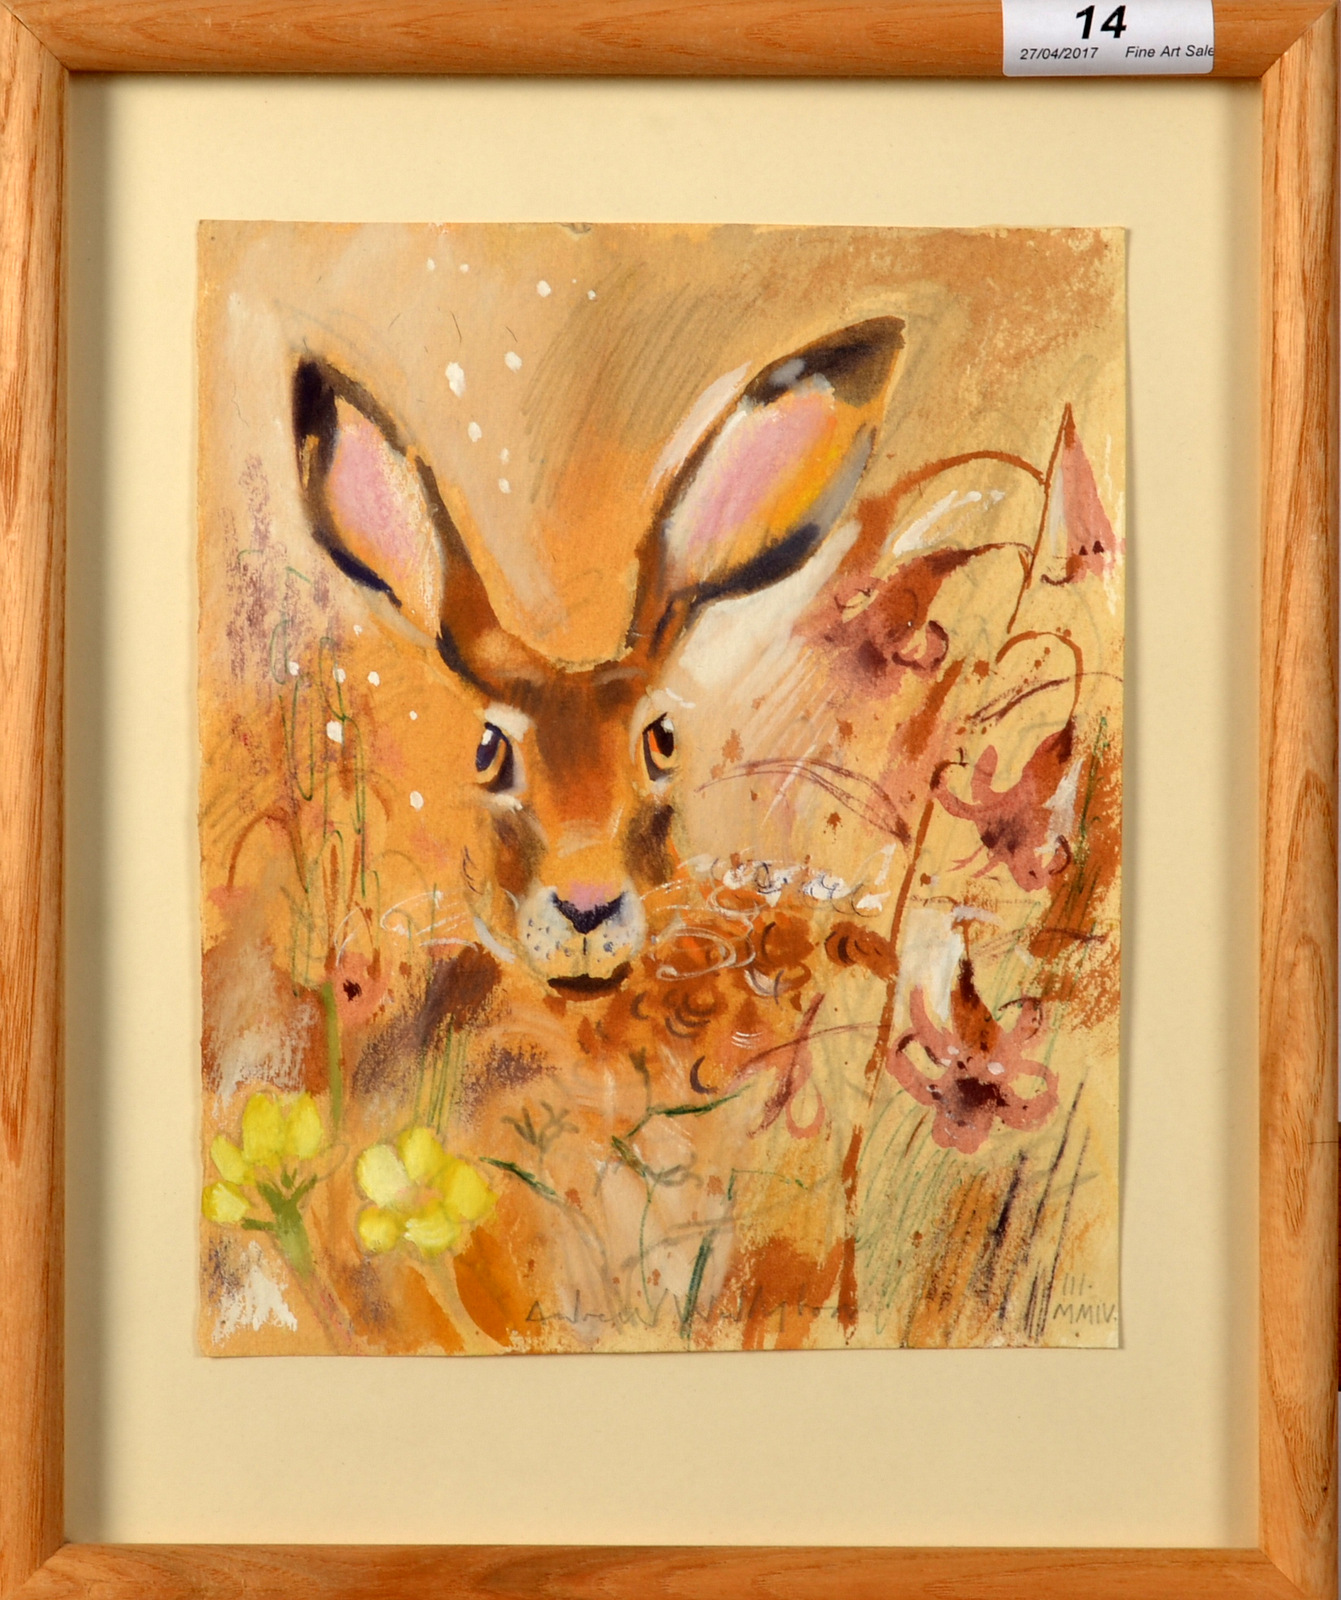 Lot 14 - ANDREW WADDINGTON Ears Watercolour Signed Dated 2004 21 x 17cm